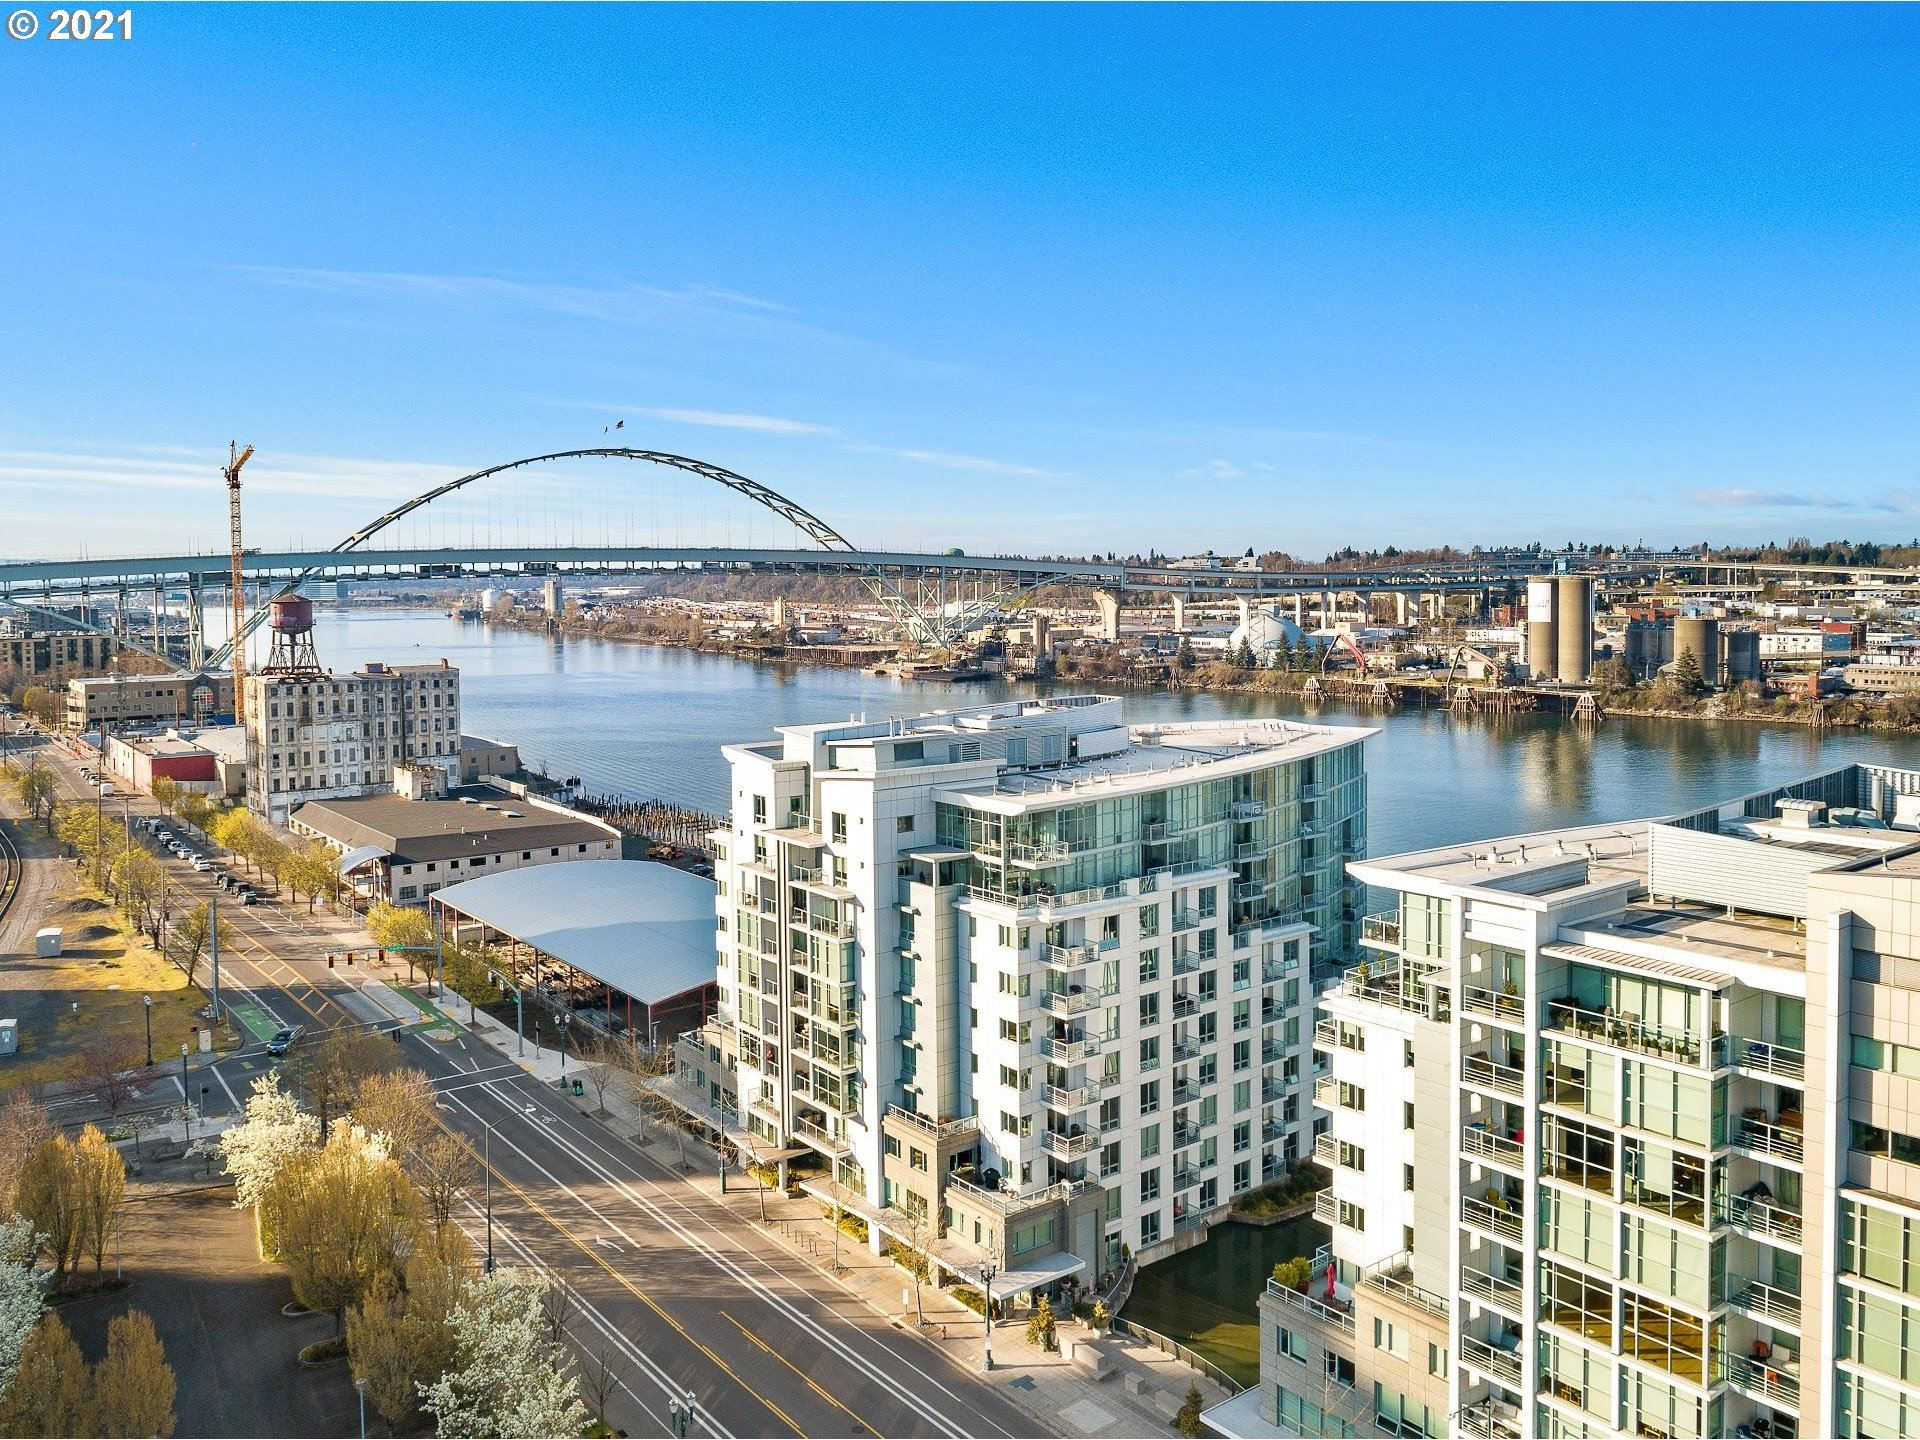 1310 NW NAITO PKWY #403A, Portland, OR 97209 - MLS#: 21543861